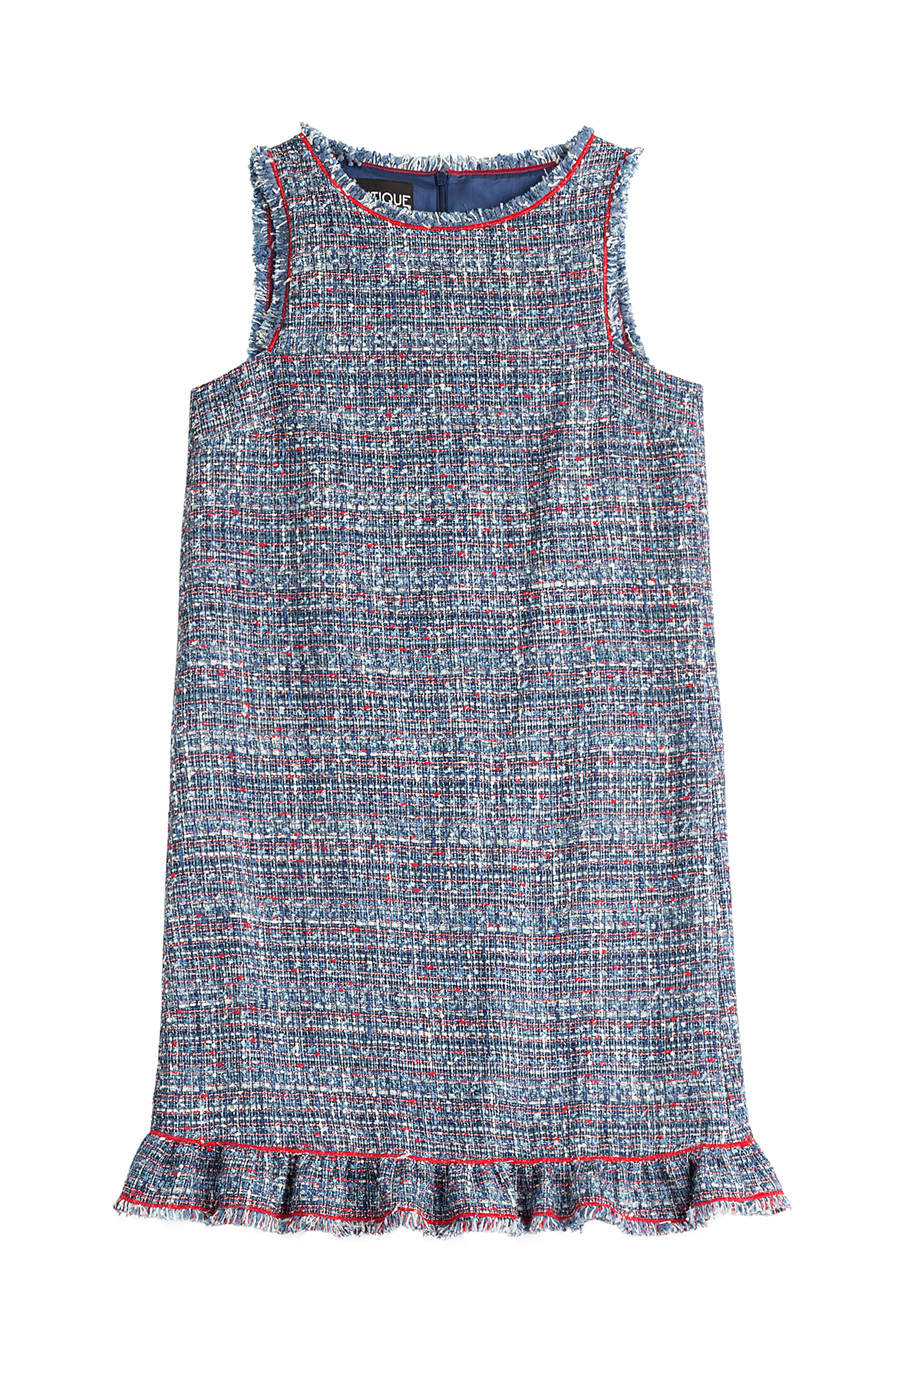 Boutique Moschino Tweed Dress In Blue